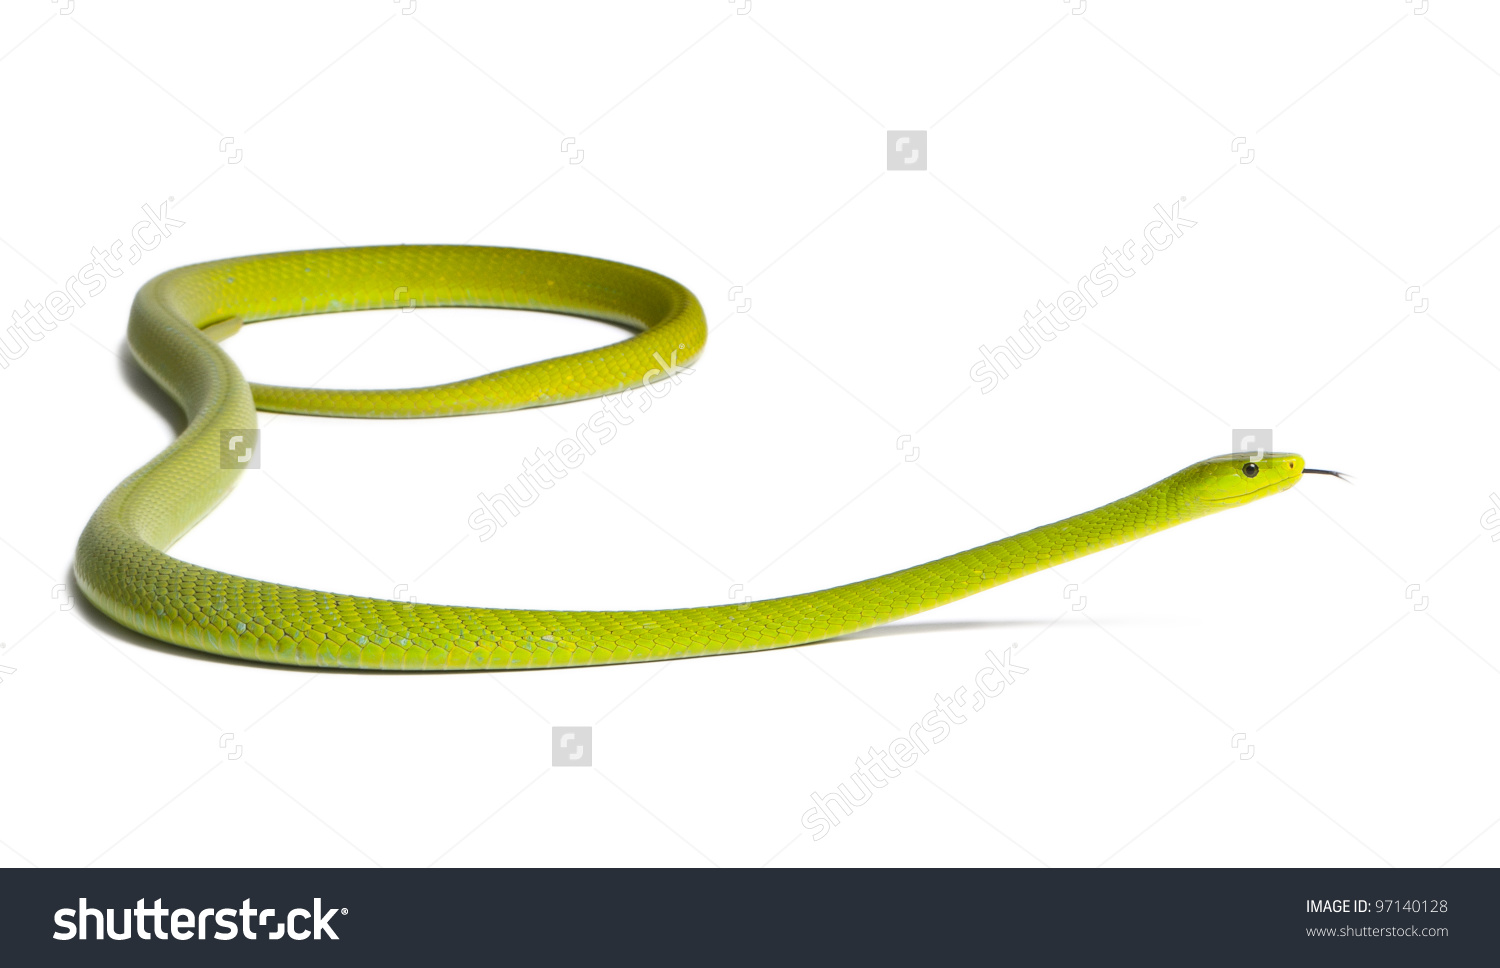 Eastern Green Mamba clipart #1, Download drawings